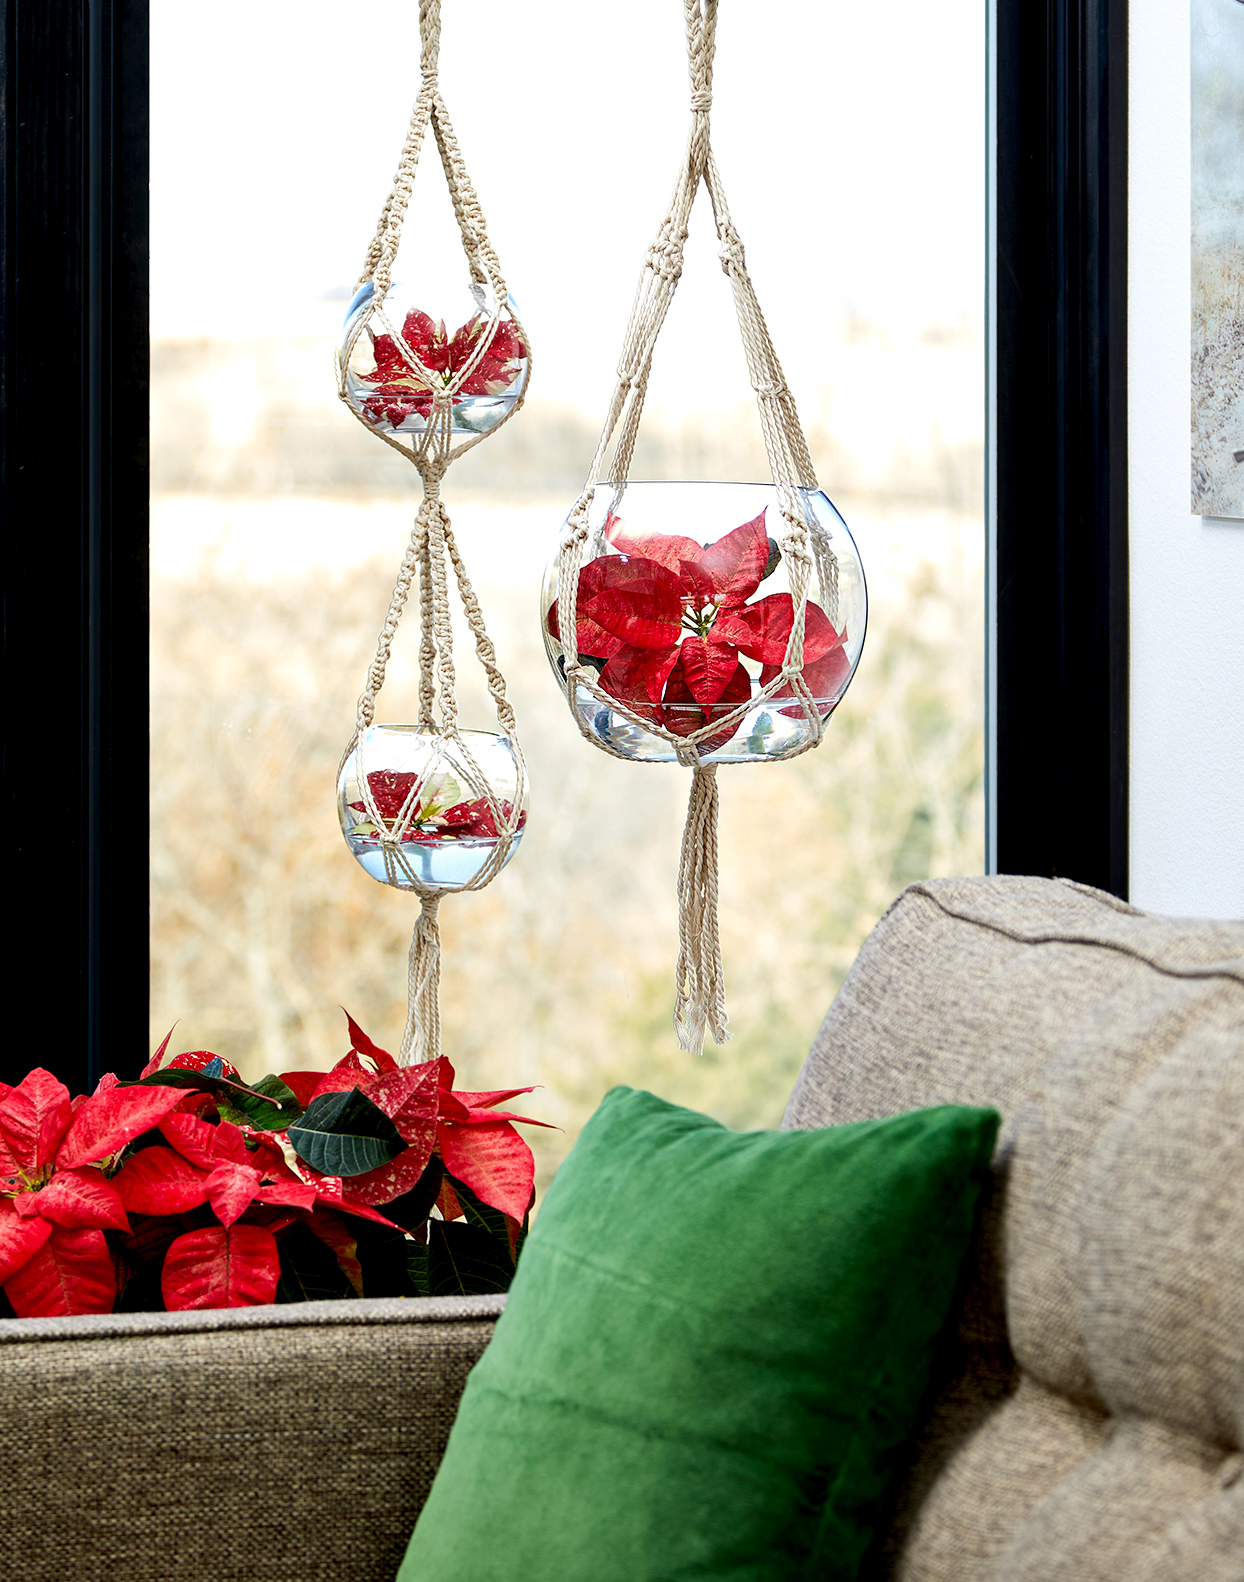 Poinsettias in hanging glass planters